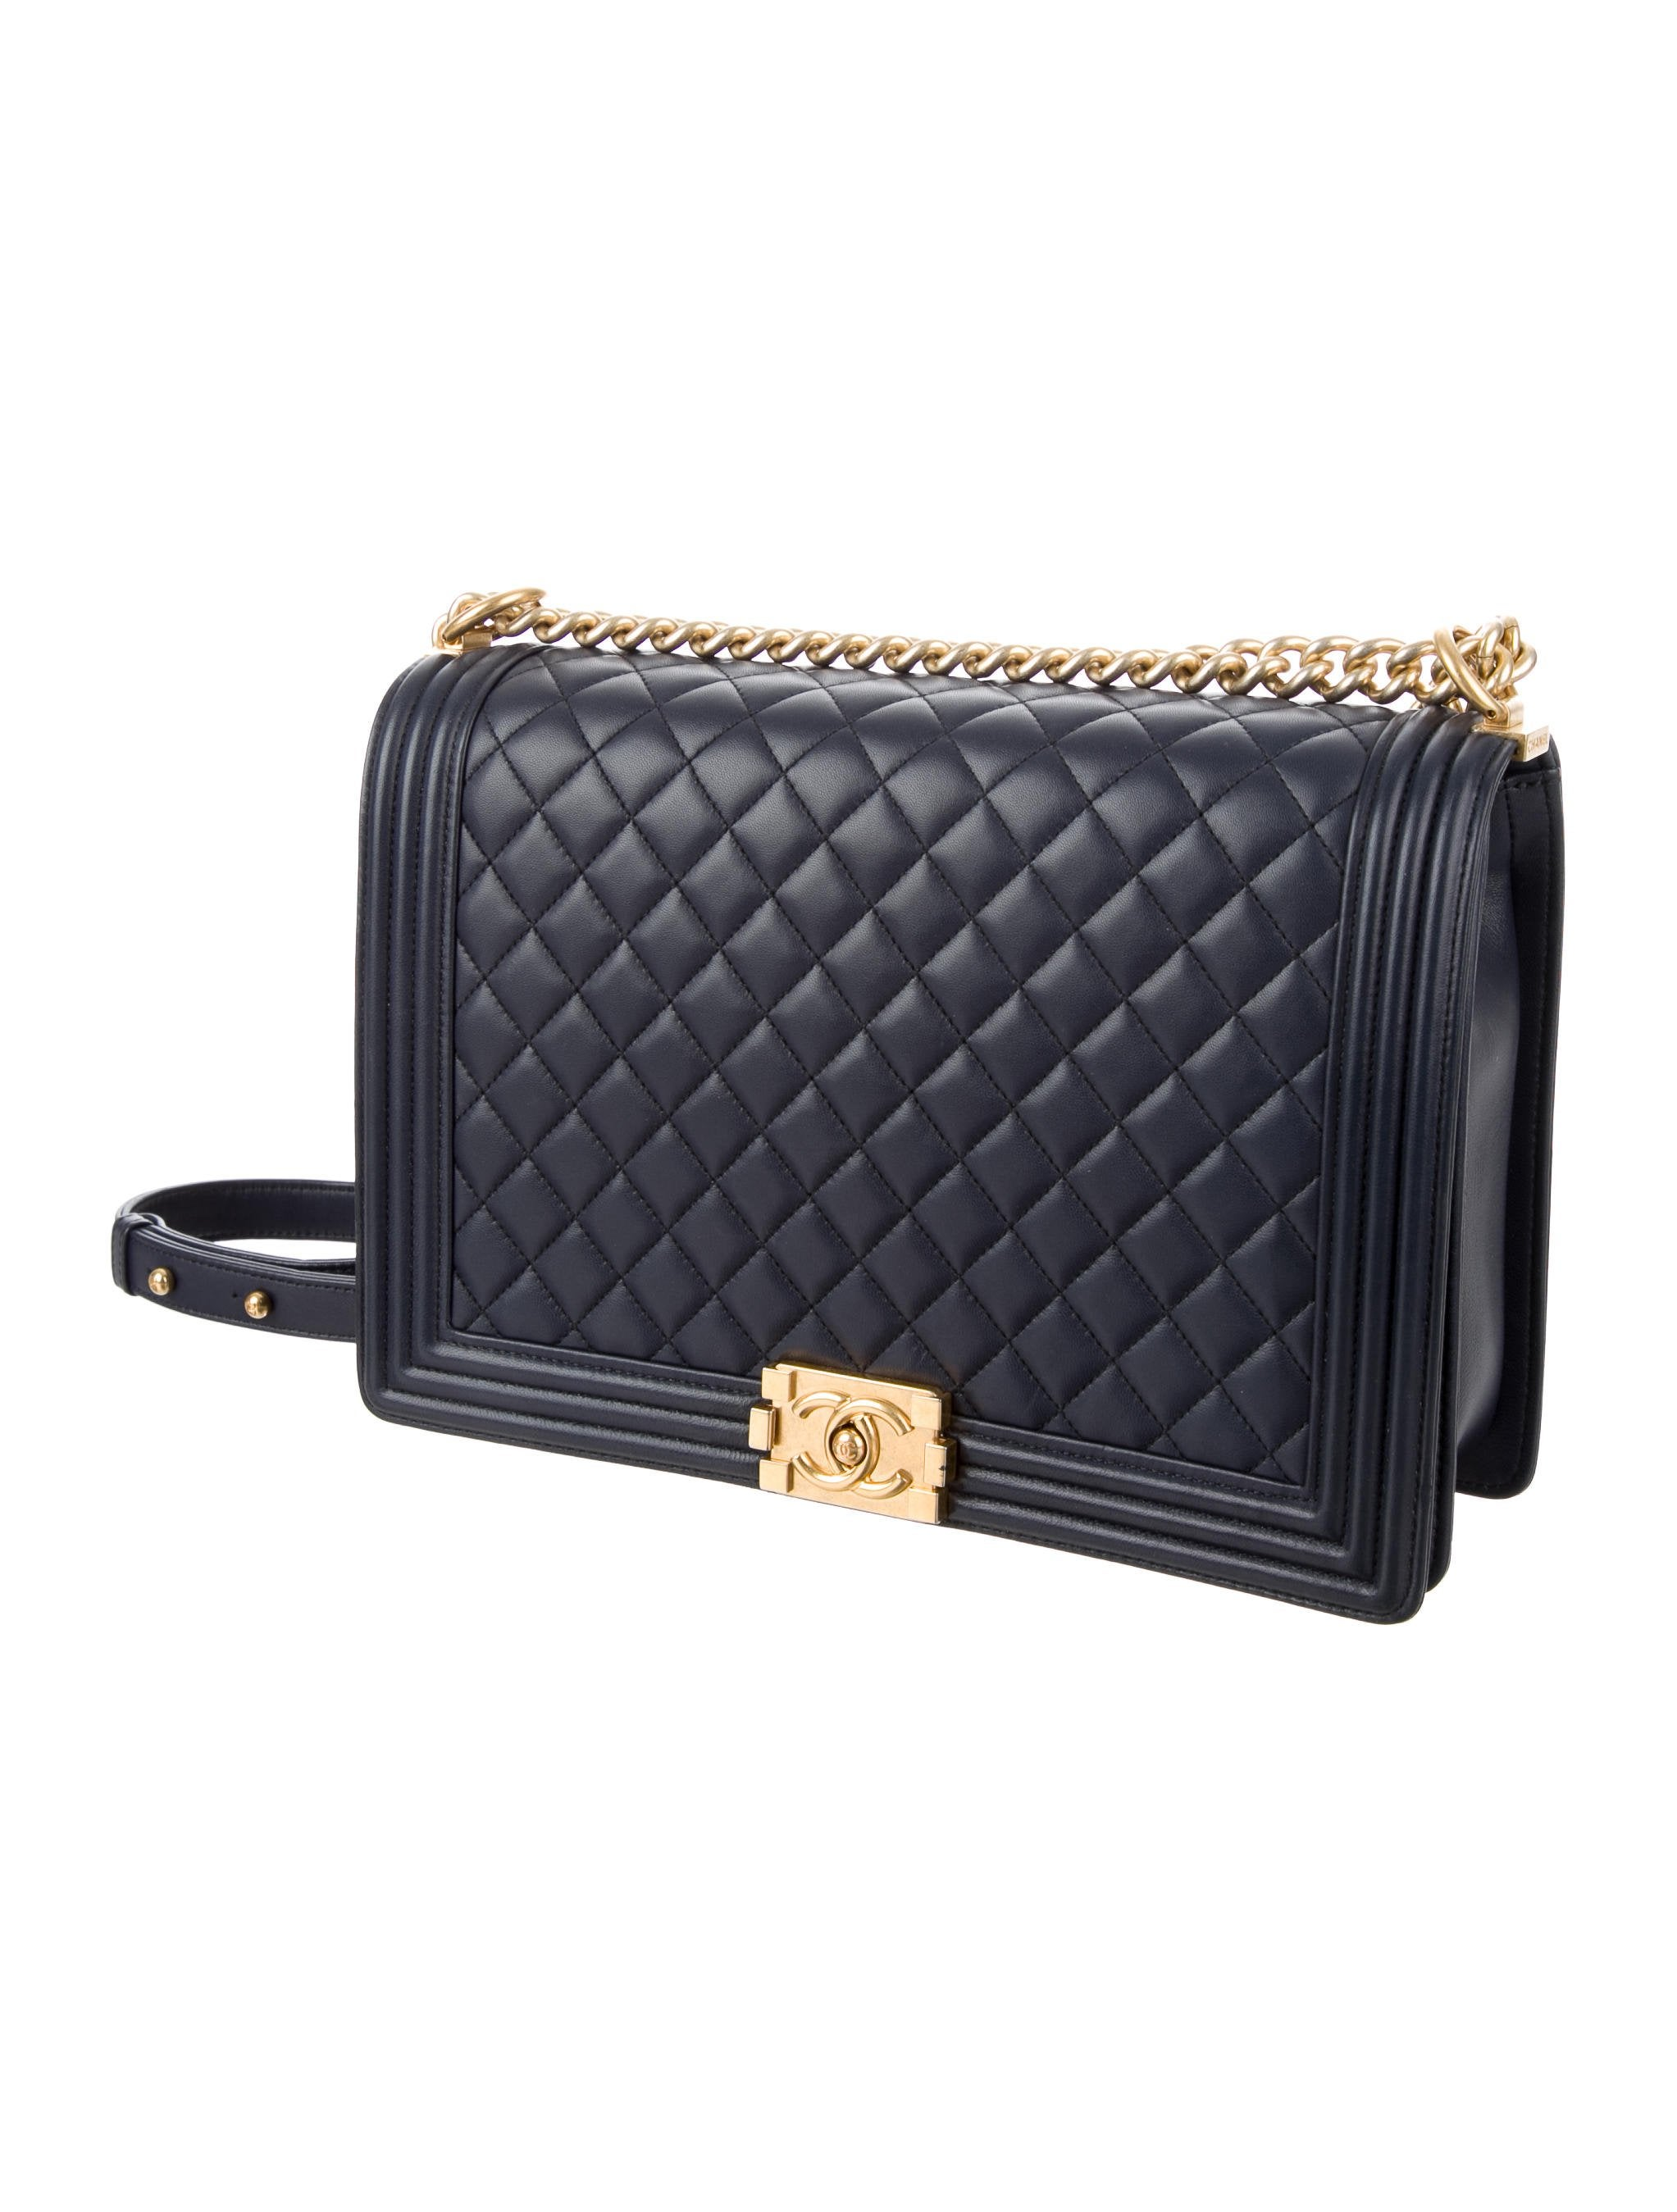 fccb0c3d25cc Chanel 2015 Large Quilted Boy Bag - Handbags - CHA179485 | The RealReal